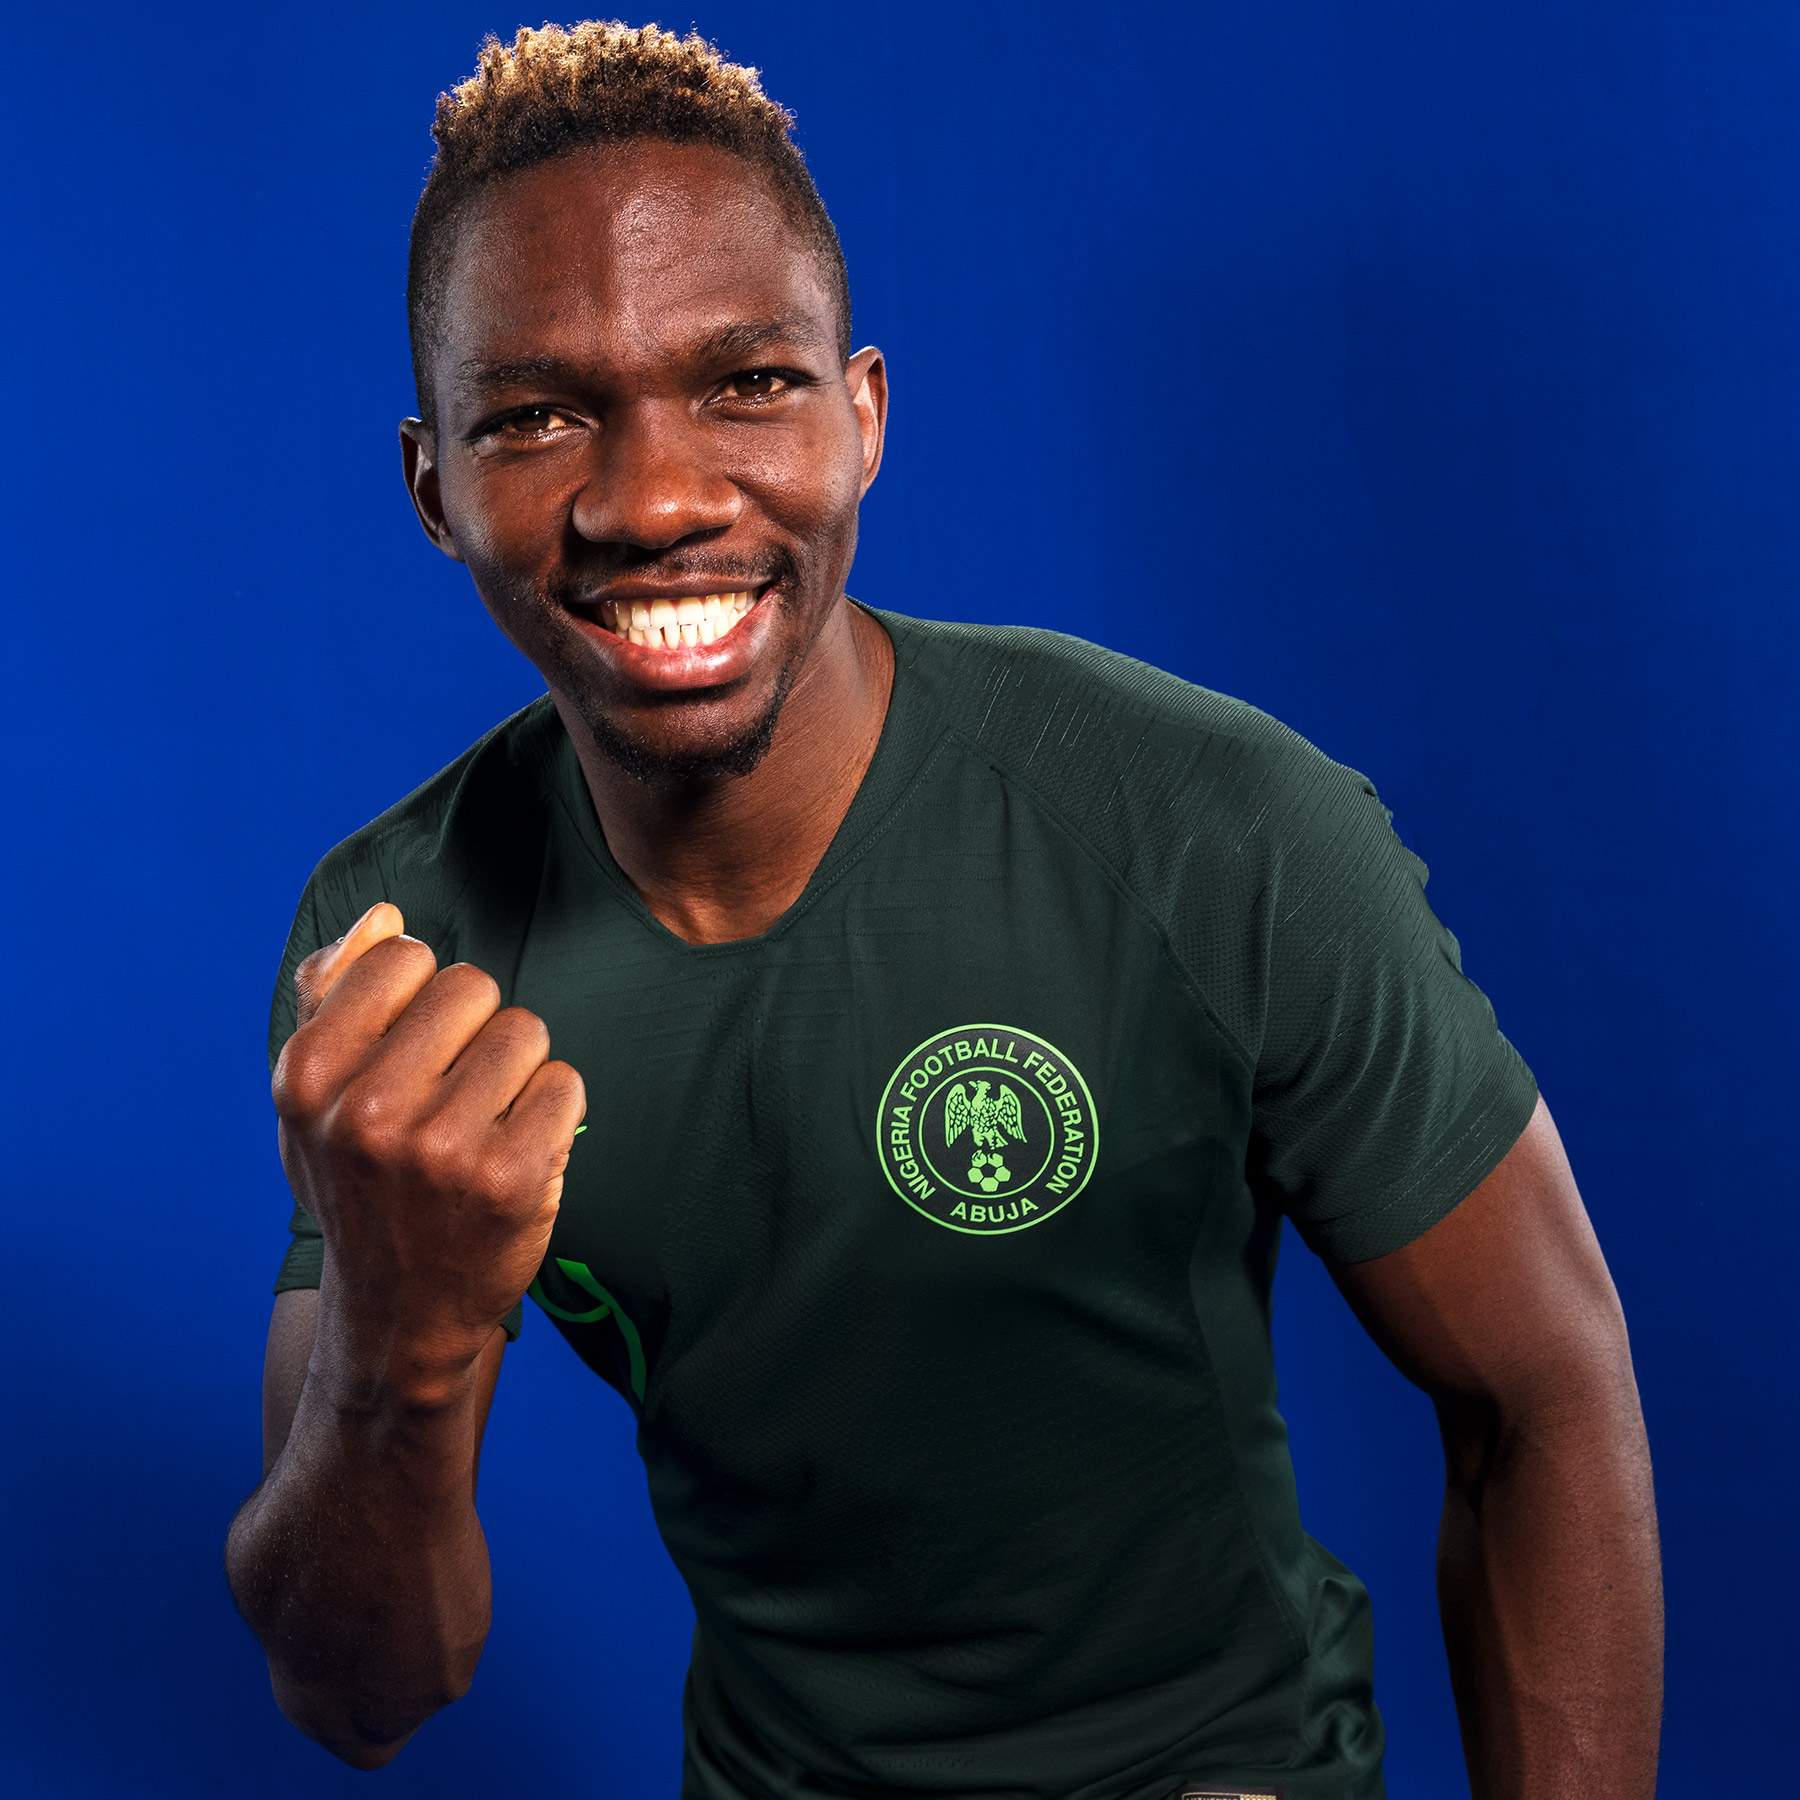 Good Boy Wolf Photographer, filmic portrait,  Nigerian footballer smiling in his green football top